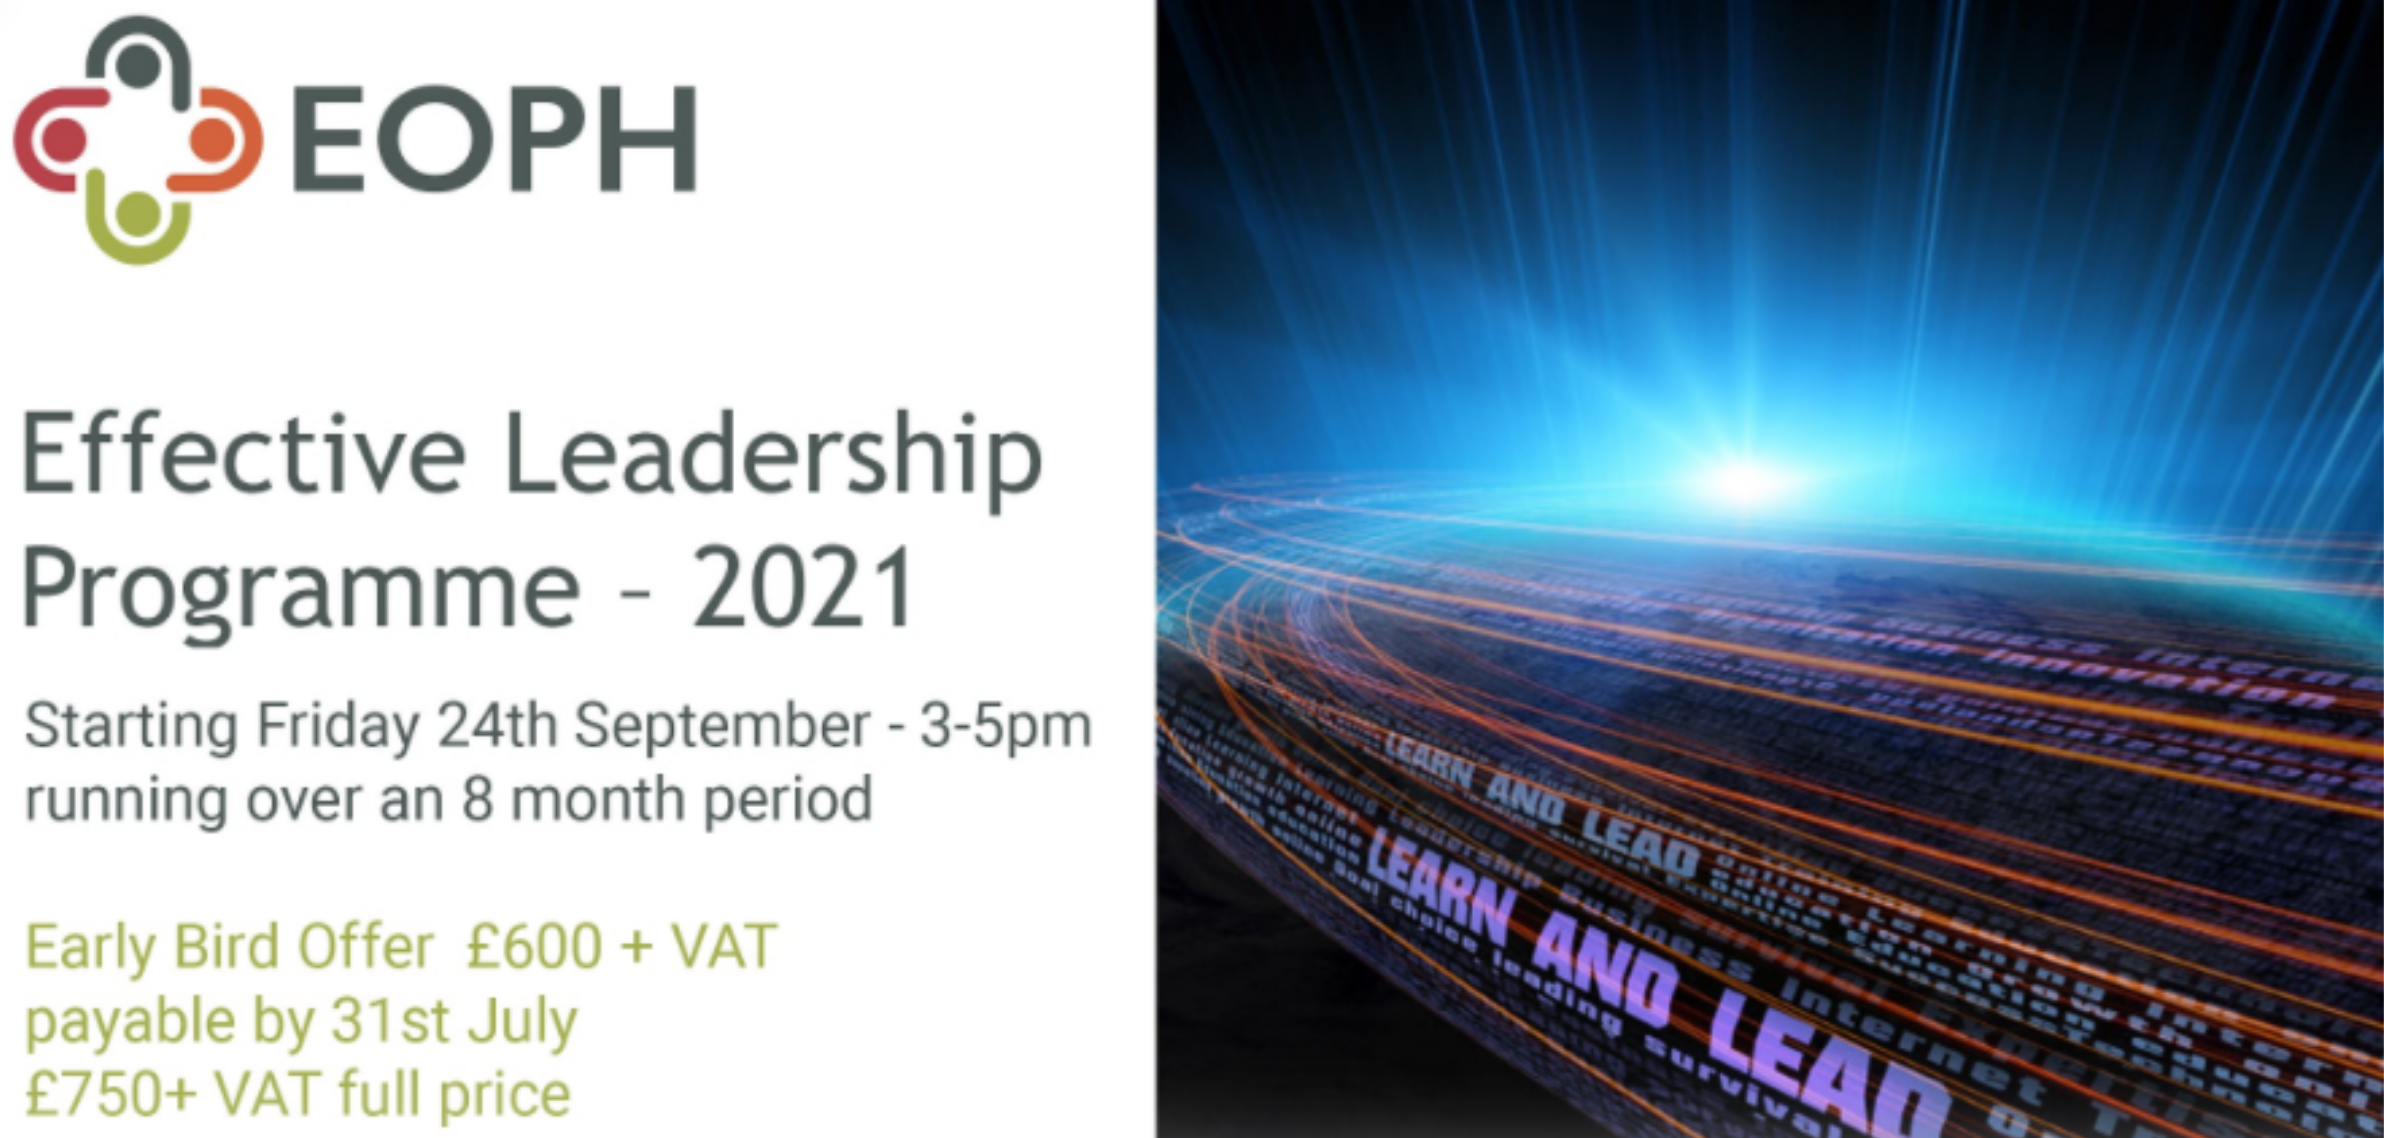 Effective Leadership Programme | 8 month course | Starting 24th September 2021 3-5pm | via Zoom